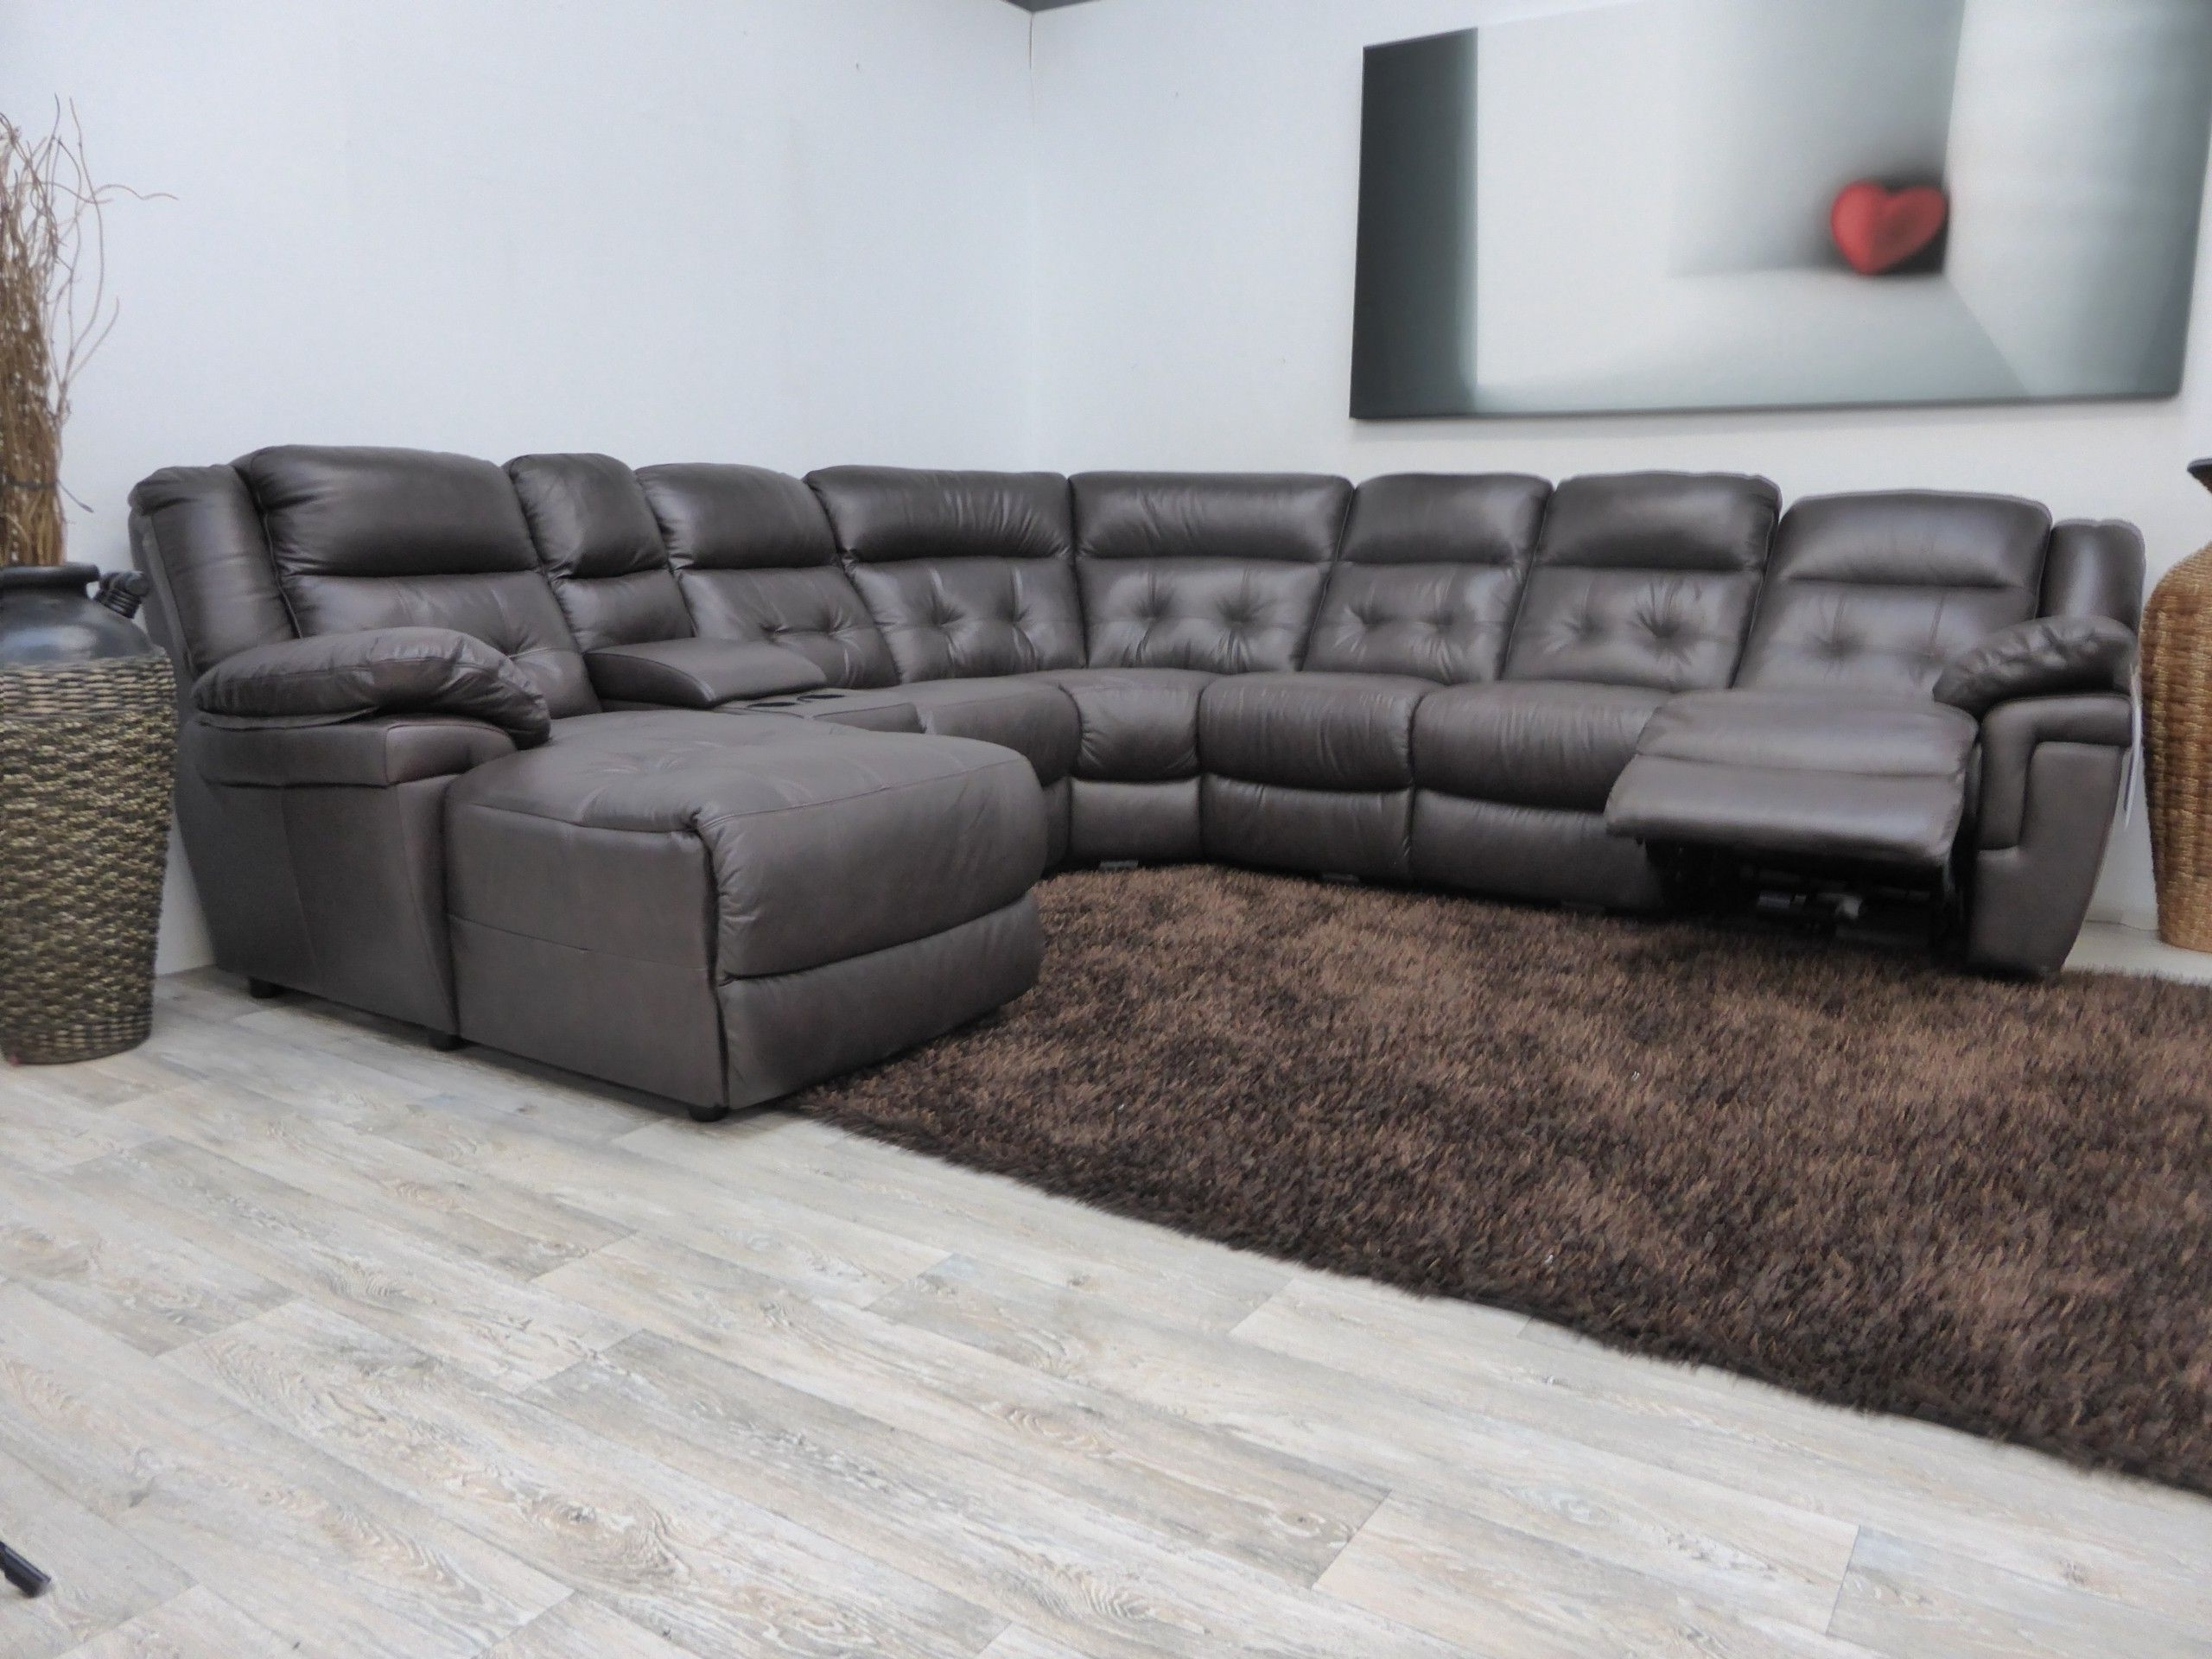 Bon L Shaped Sofa Design With Black Upholstery Faux Leather Sofa Regarding  Favorite Lazy Boy Sectional Sofas